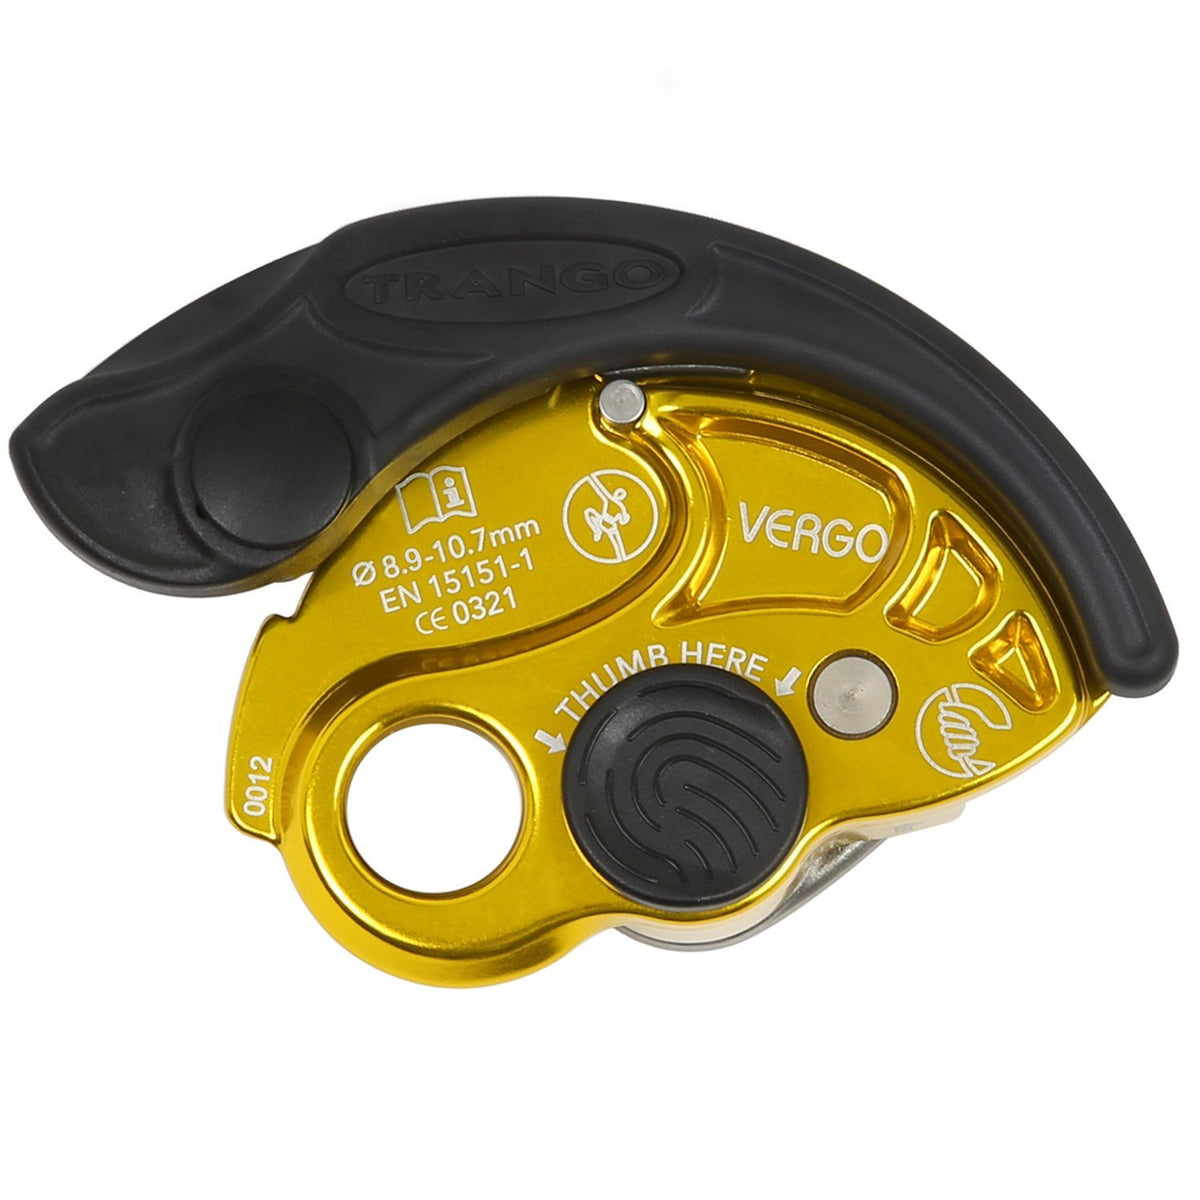 Trango Vergo climbing belay device, in Gold colour